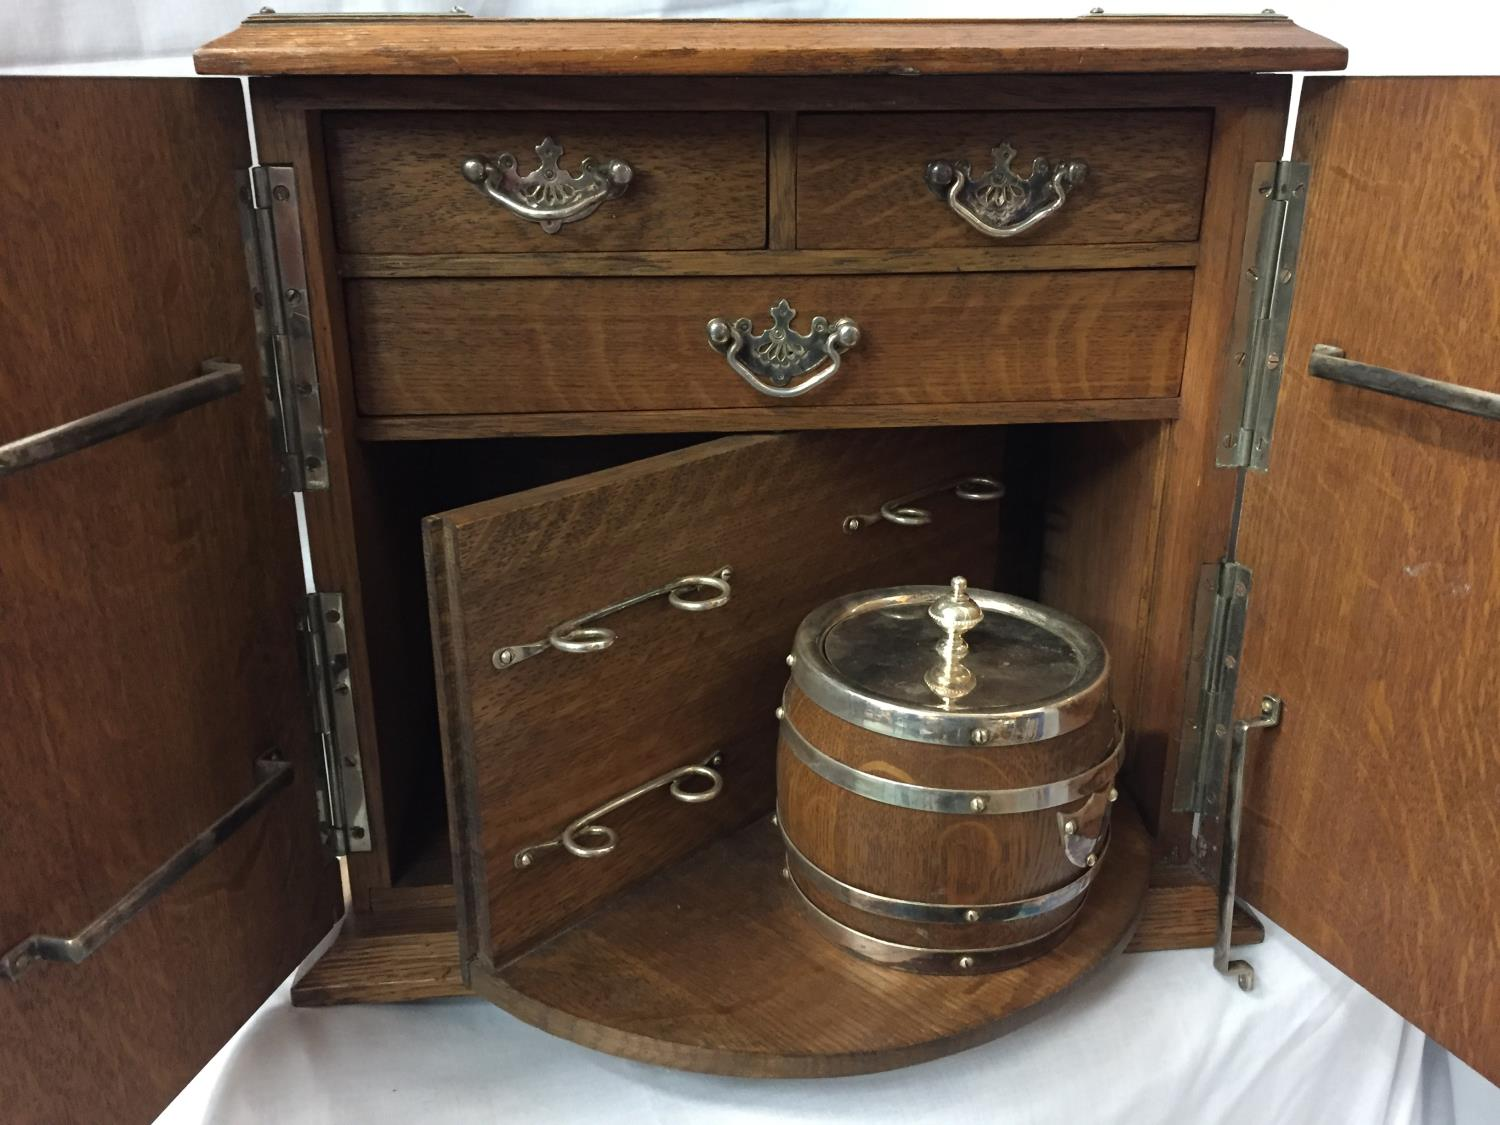 AN EDWARDIAN OAK SMOKING ROOM COMPENDIUM DATED 1921 HEIGHT 32CM - Image 3 of 4